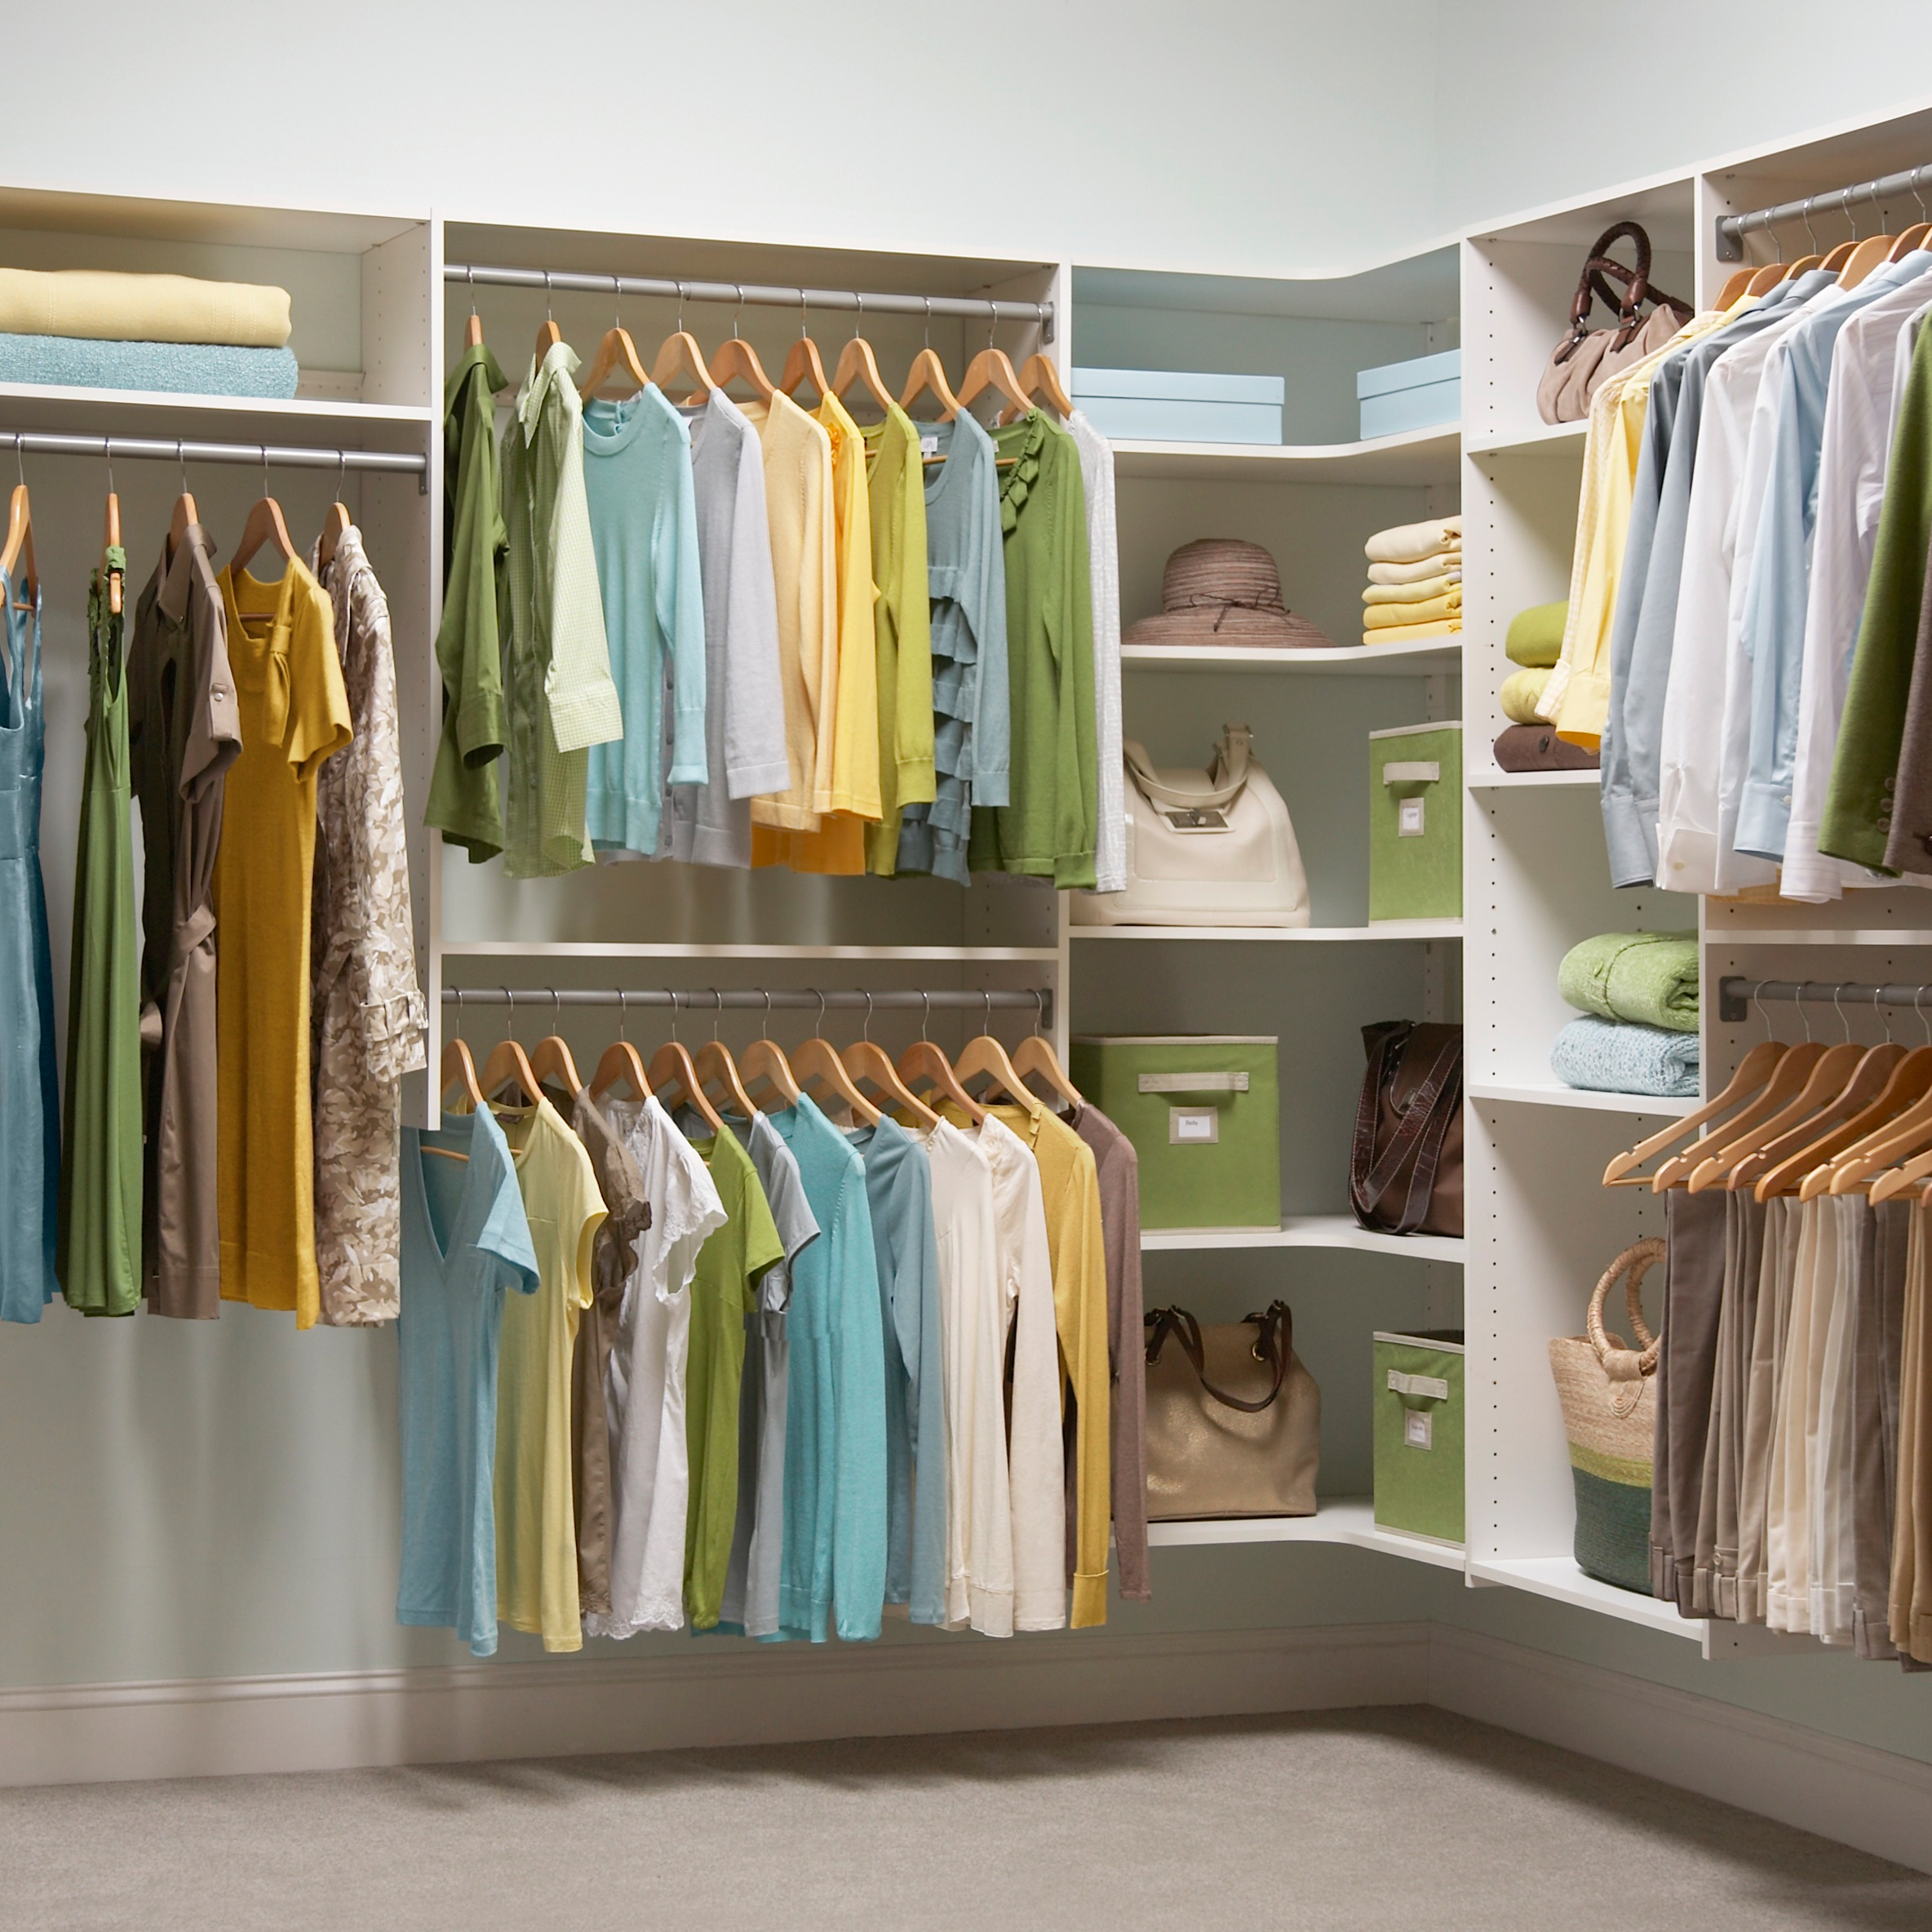 4 ways to think outside the closet - Home Closet Design